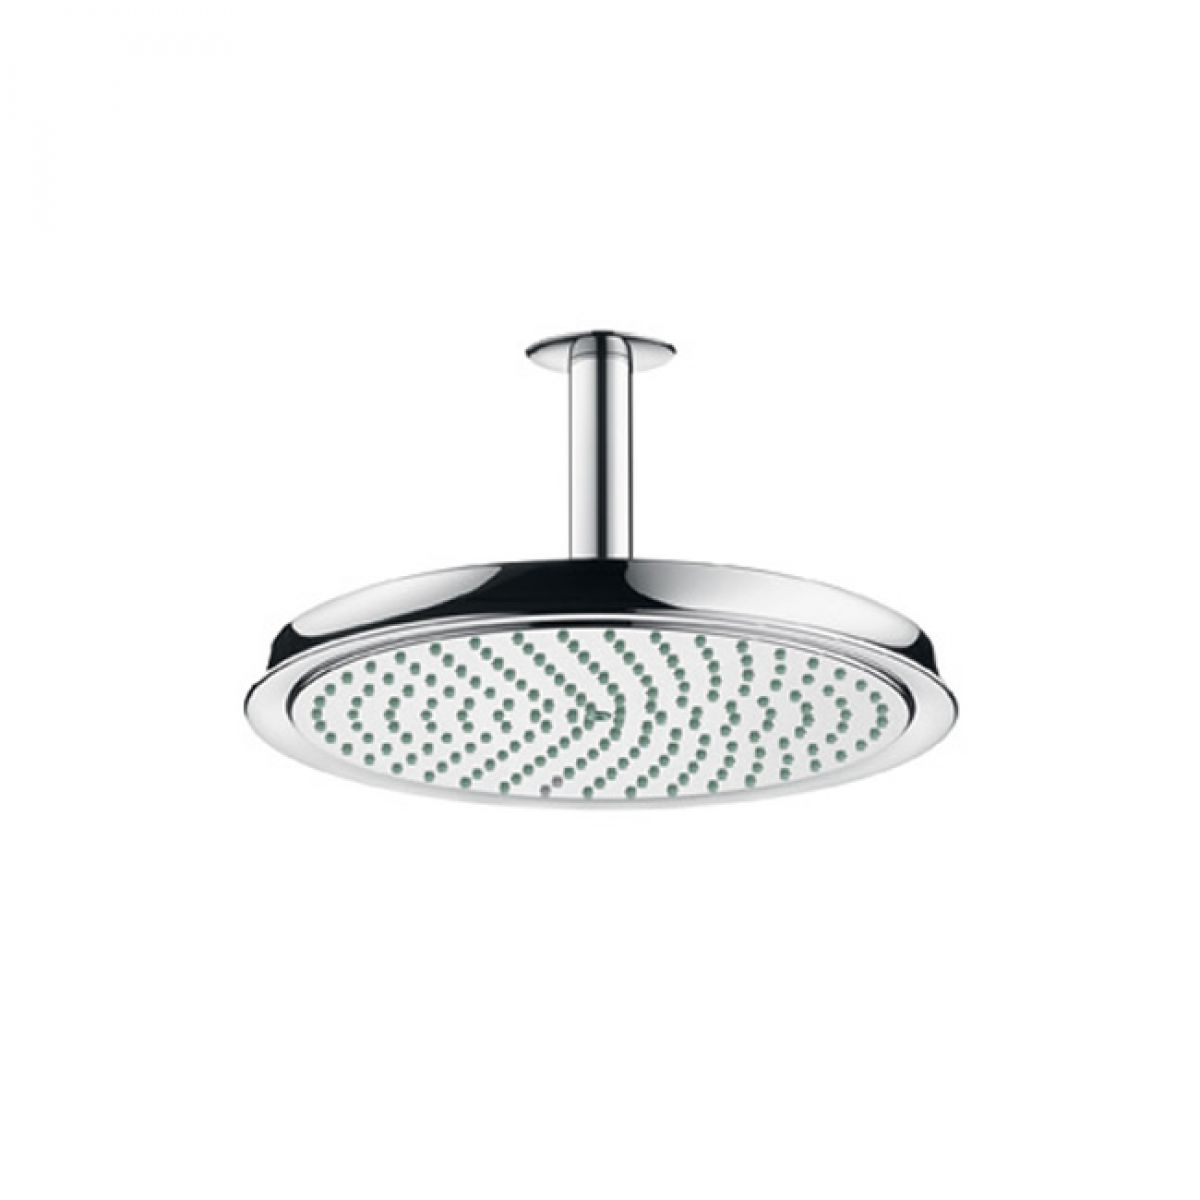 hansgrohe raindance classic overhead 240mm air shower. Black Bedroom Furniture Sets. Home Design Ideas